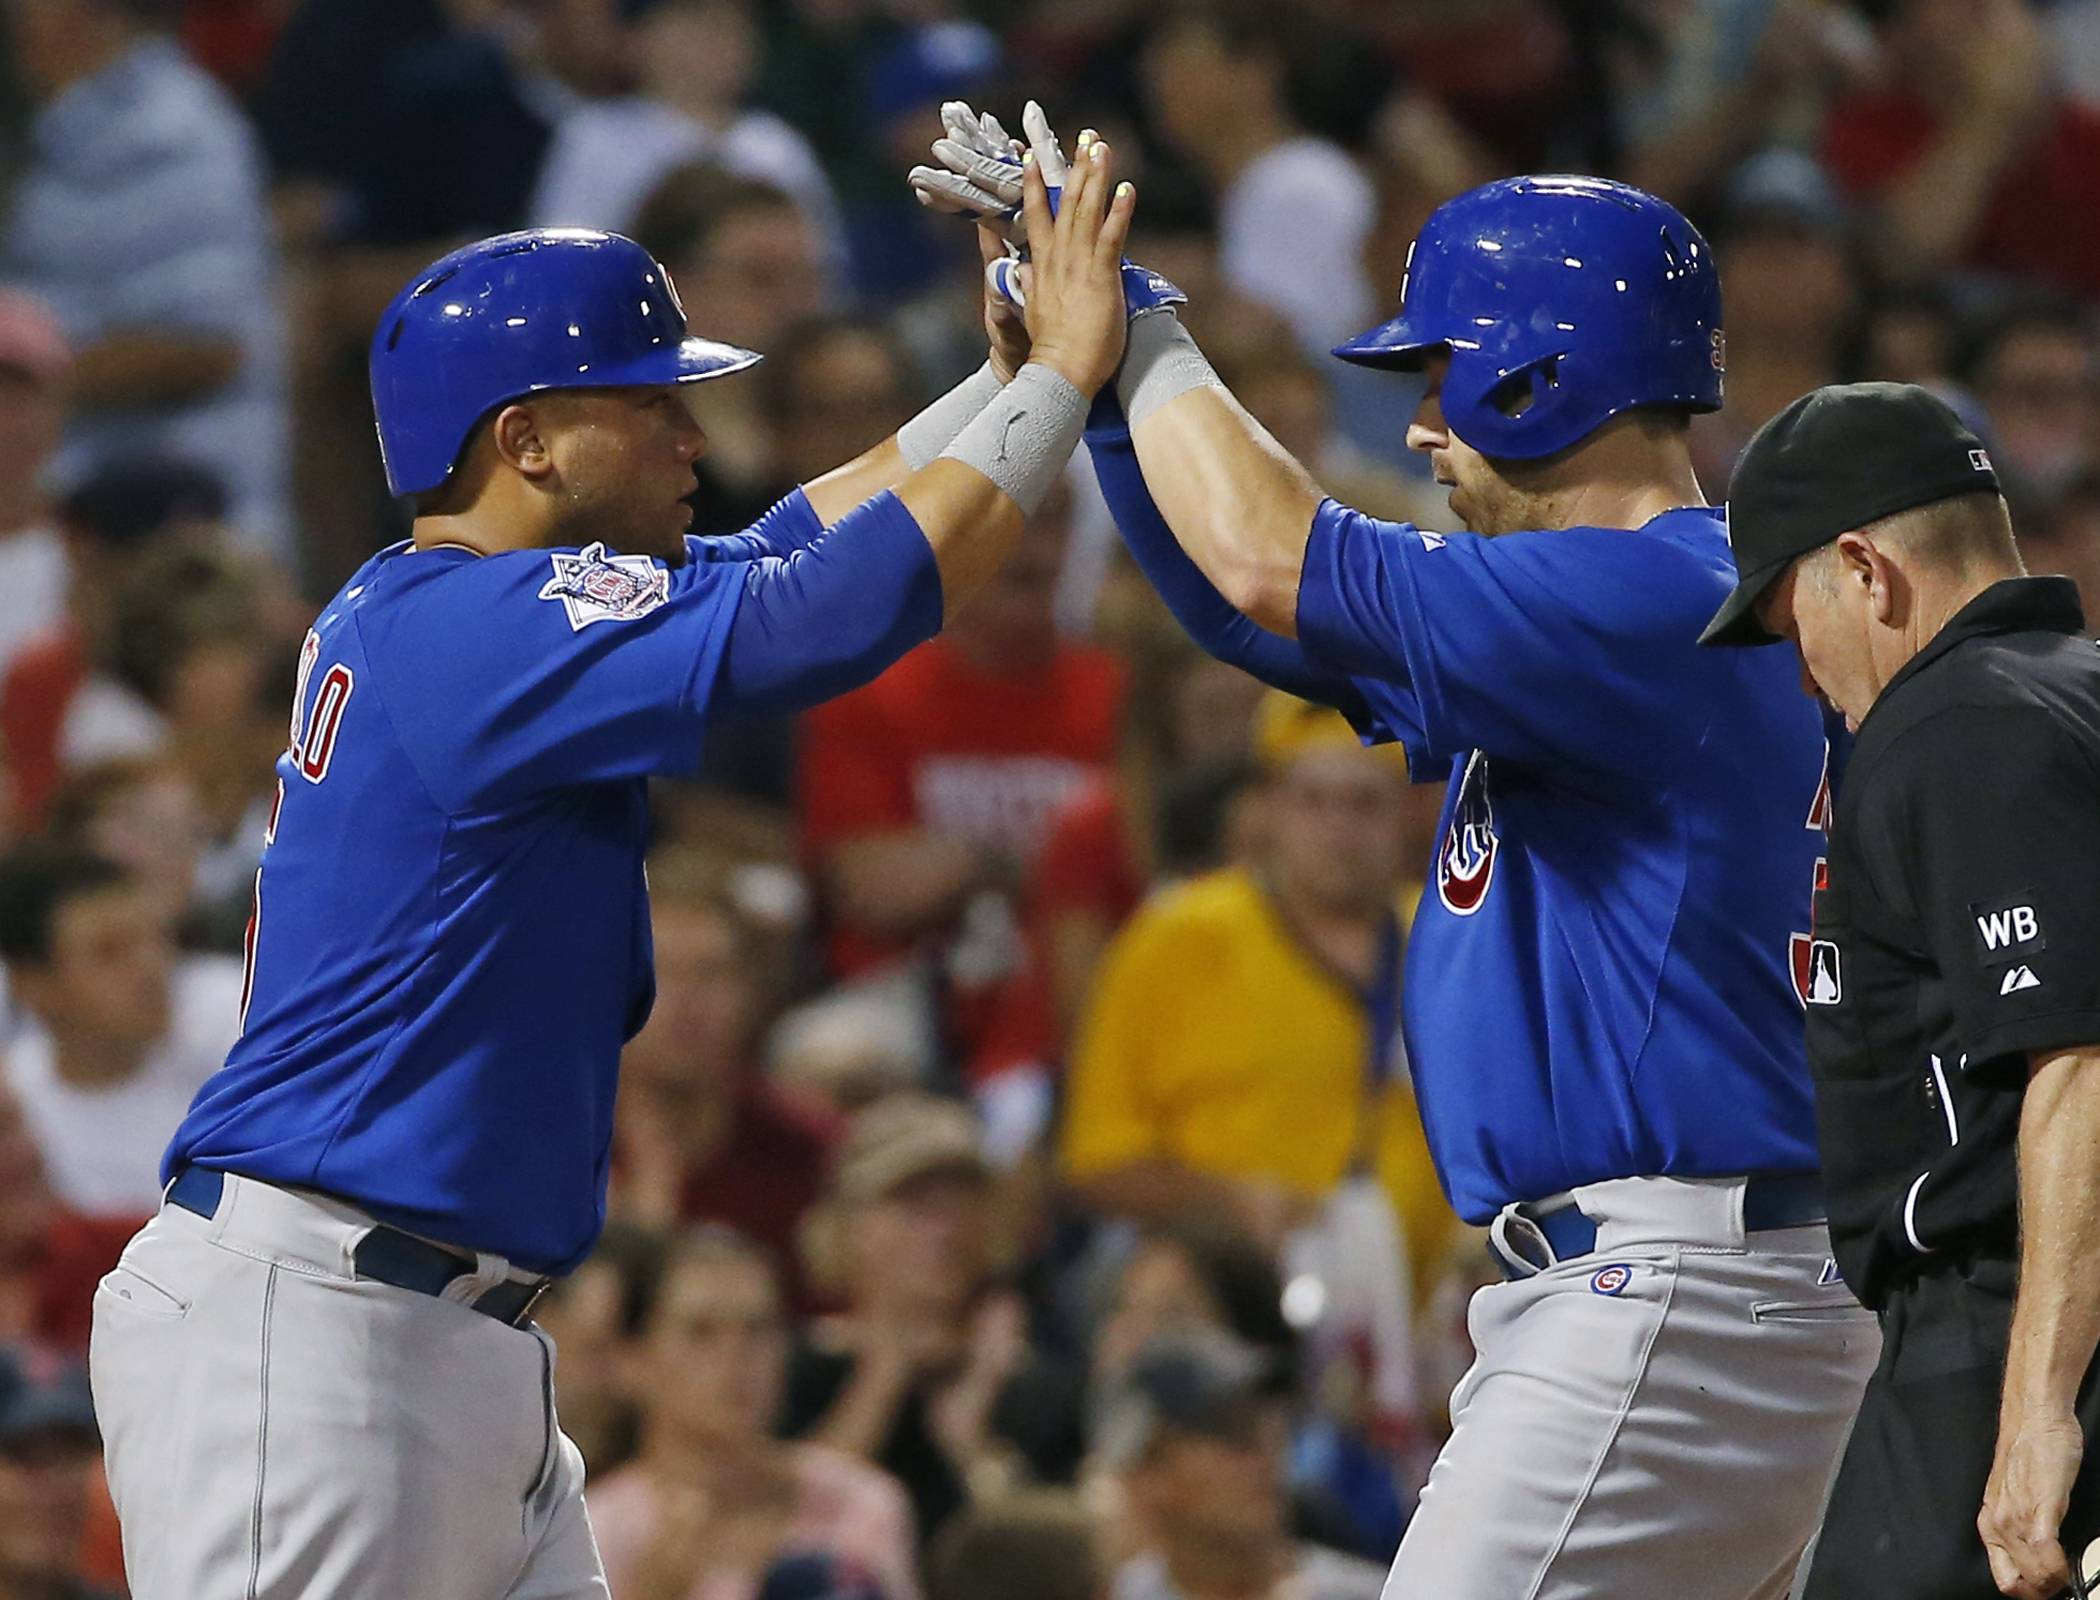 The Cubs' Mike Olt, right, celebrates his 2-run homer with Welington Castillo on Wednesday at Fenway Park in Boston. Castillo, Justin Ruggiano and Nate Schierholtz also homered as the Cubs outhit the Red Sox 19-16.